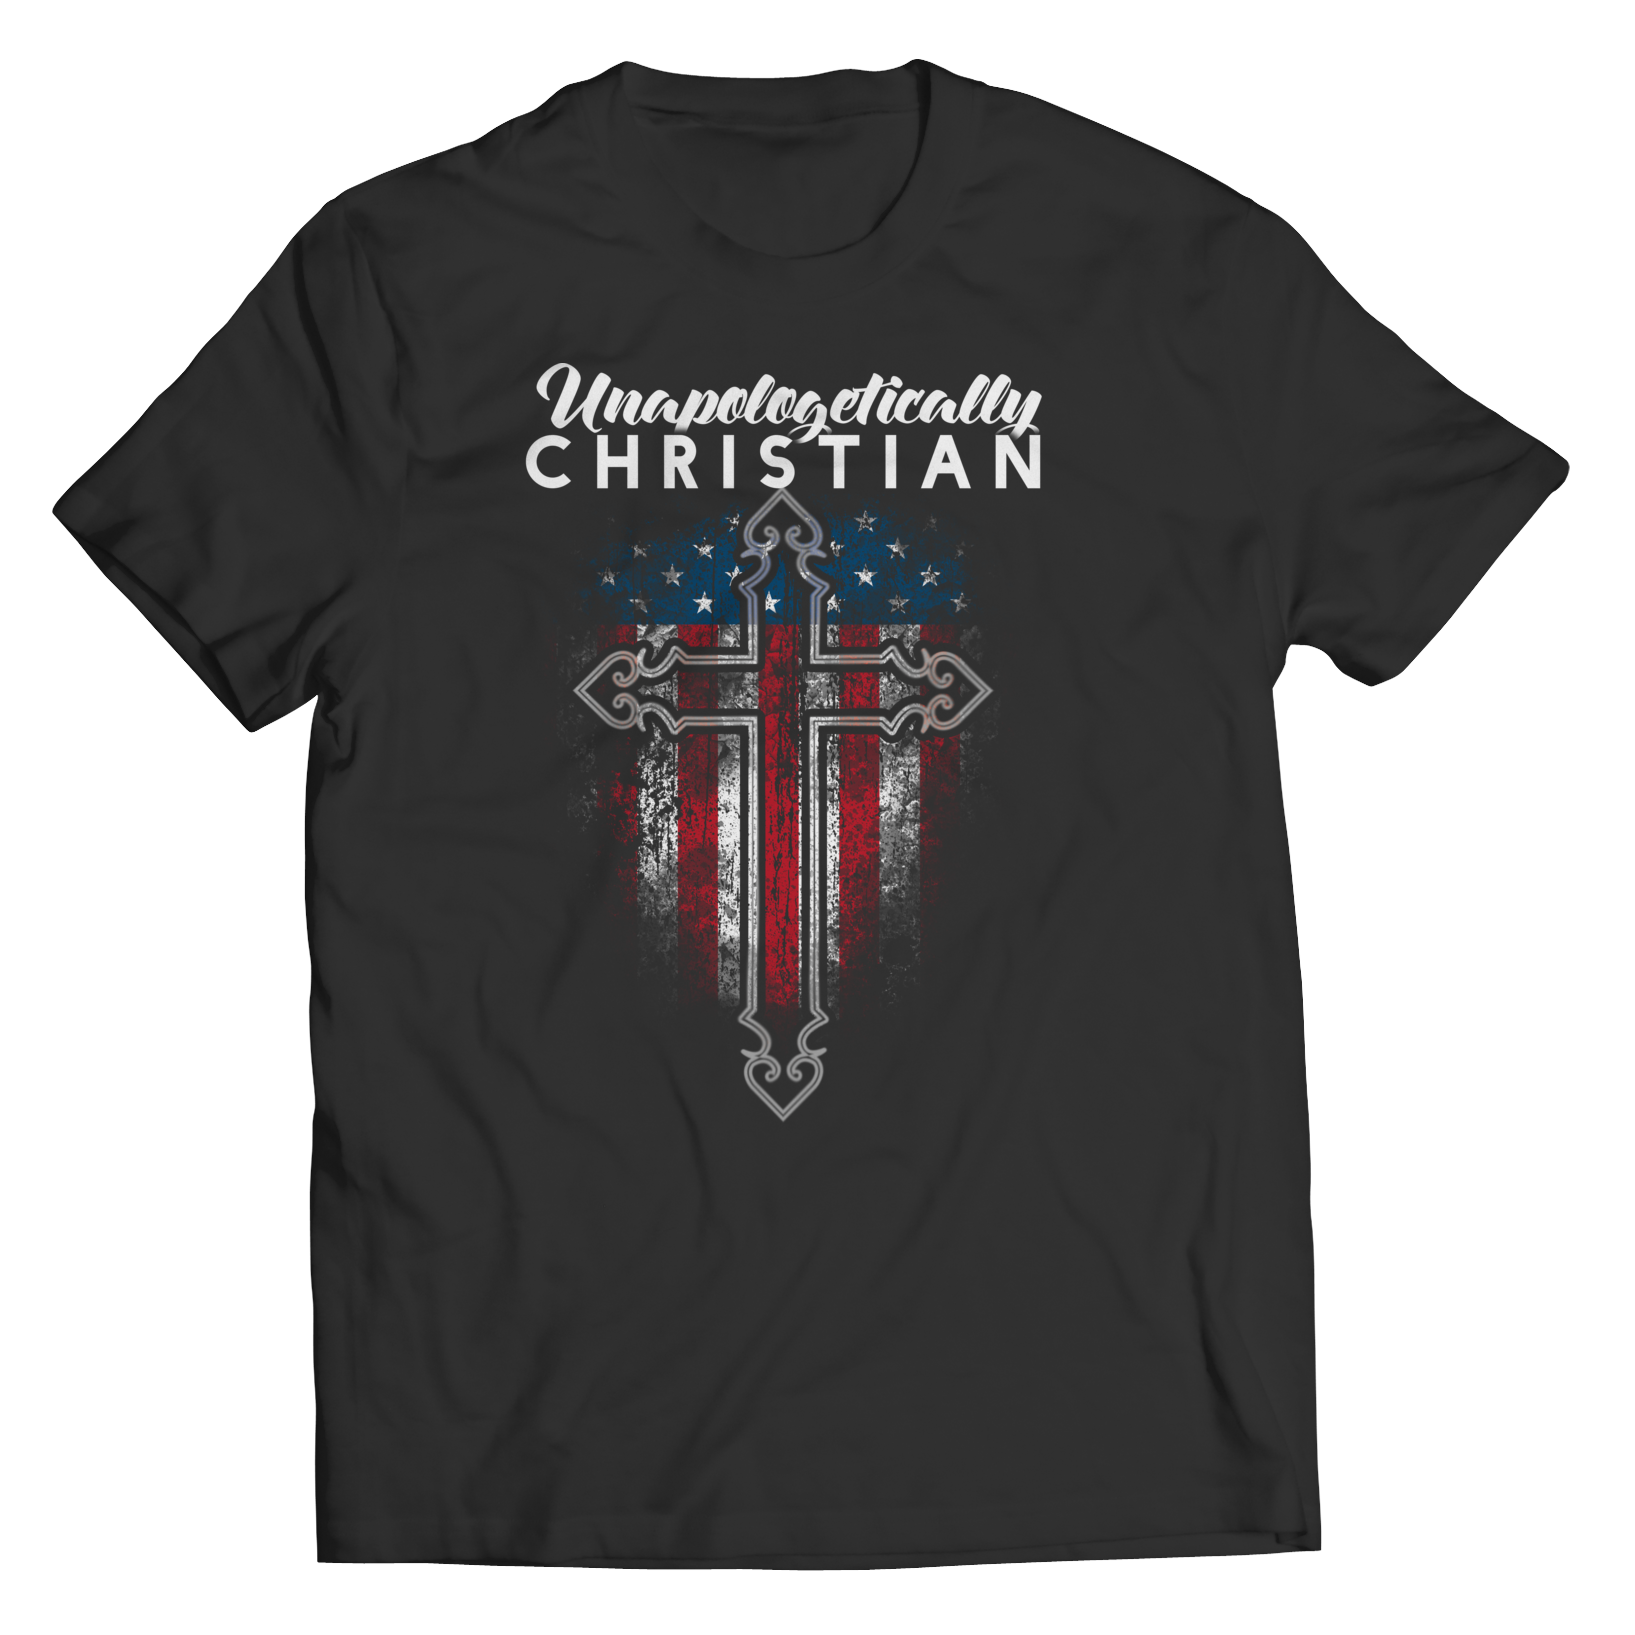 Unapologetically Christian Unisex Shirt - Black